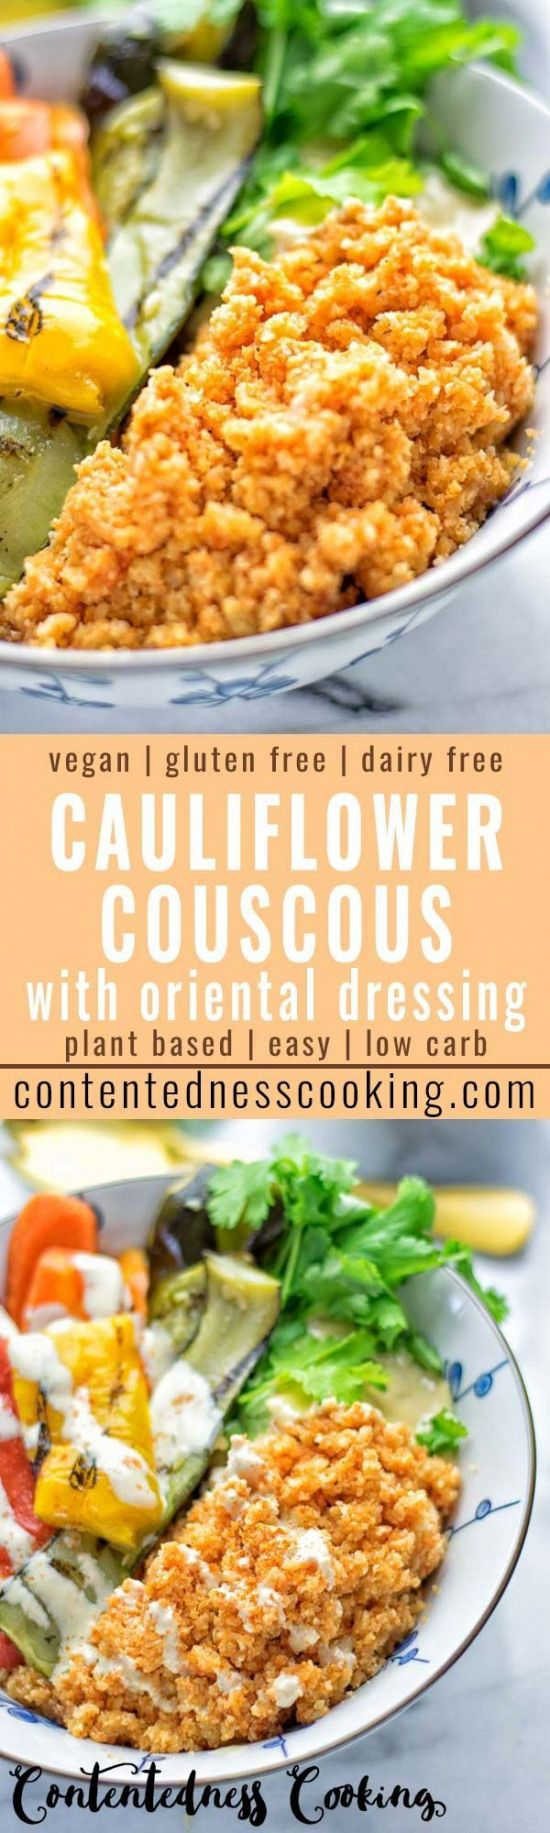 Your favorite recipe source for healthy food [Paleo, Vegan, Gluten free] This Cauliflower Couscous with Oriental Salad Dressing is naturally vegan gluten free and so delicious. Trust me you would never believe its dairy free and low carb. All coated in the most incredible and super easy to make oriental salad dressing you can ask for. Try it now for dinner lunch meal prep or work lunch. So creamy and addictive.